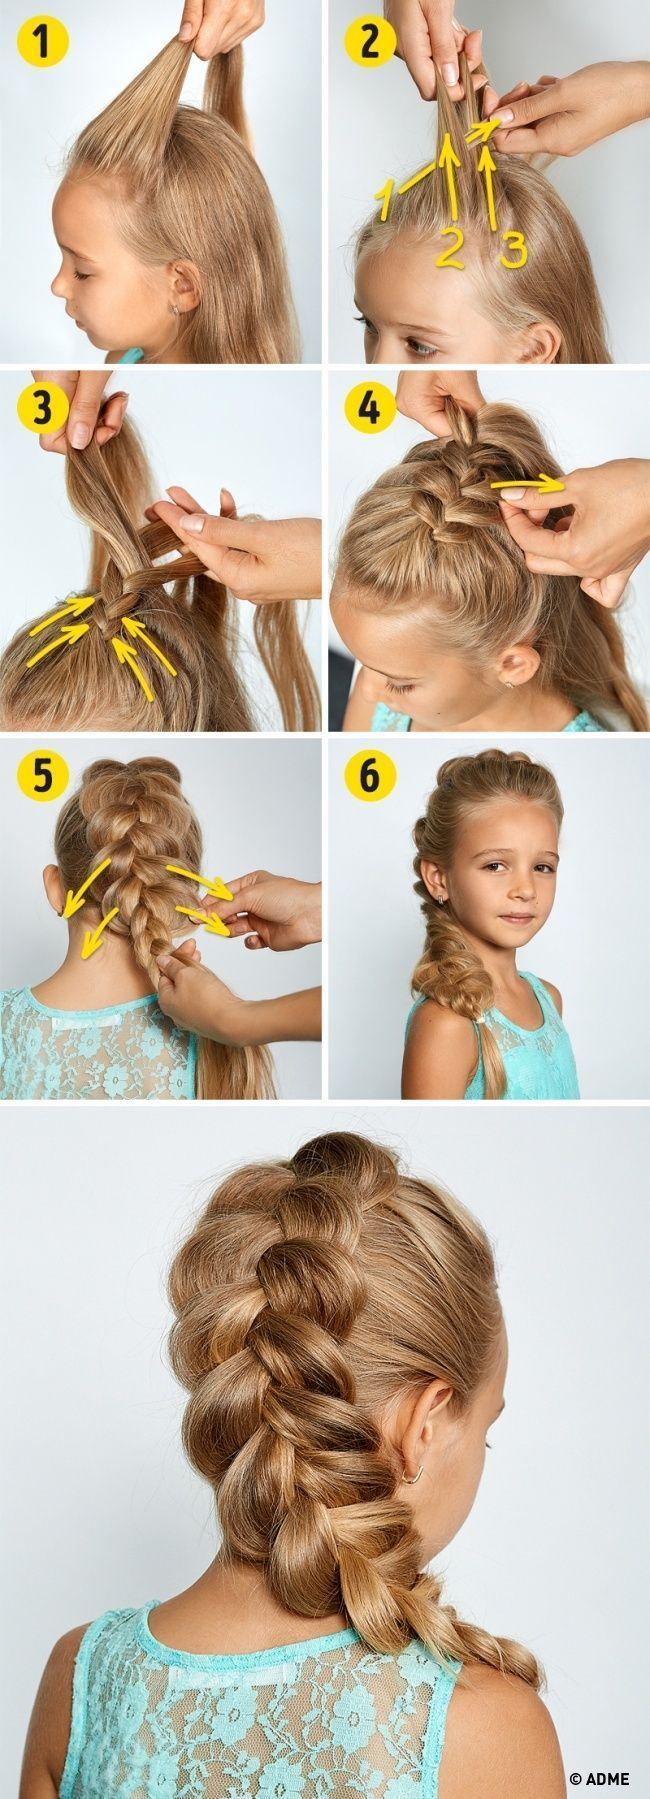 63 children's hairstyles for graduation kindergarten | Childrens hairstyles, Little girl ...